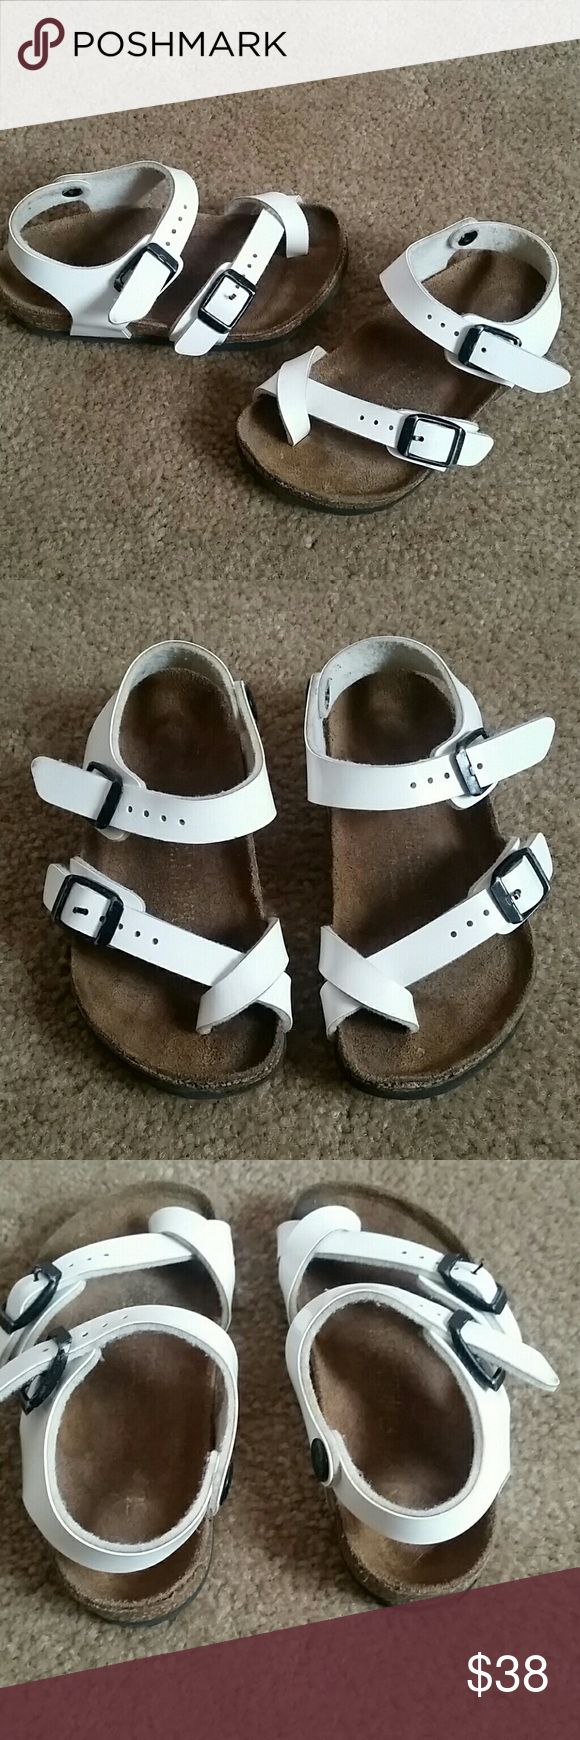 Toddler birkenstocks These are the most adorable sandals I have ever seen, unfortunately too small for my little princess. White patent.  Size 24 Birkenstock Shoes Sandals & Flip Flops